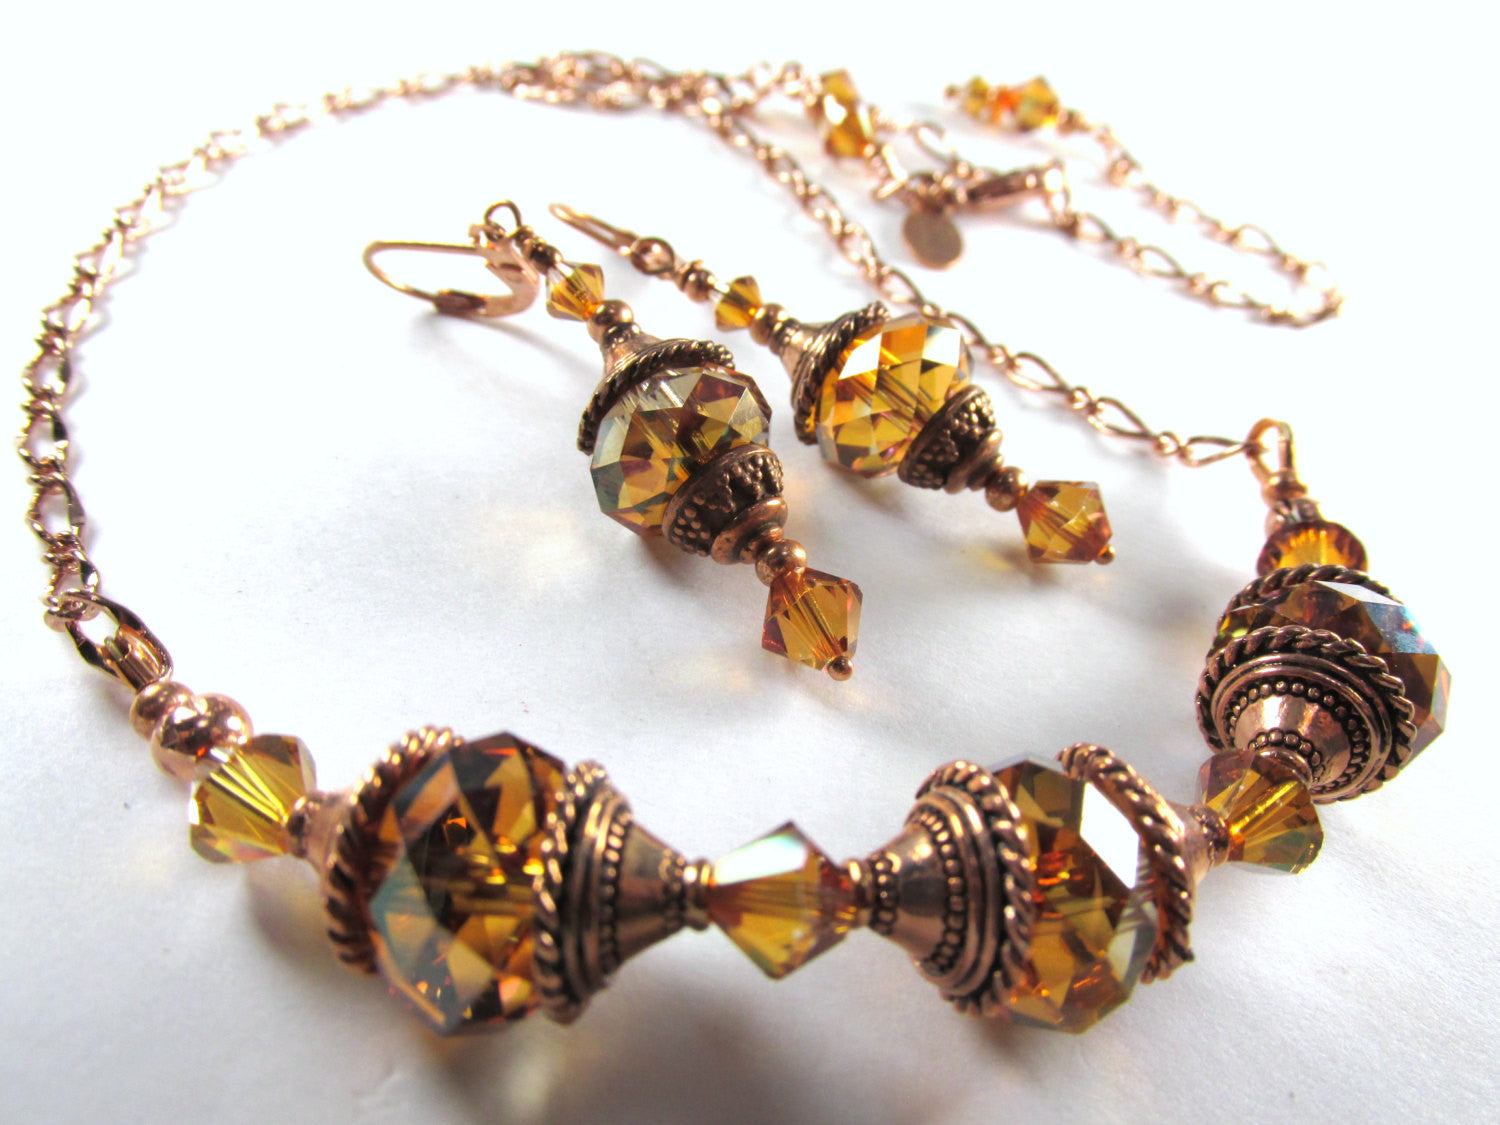 Swarovski Crystal Copper Rust Necklace and Earring Matching Set in Copper - Odyssey Creations